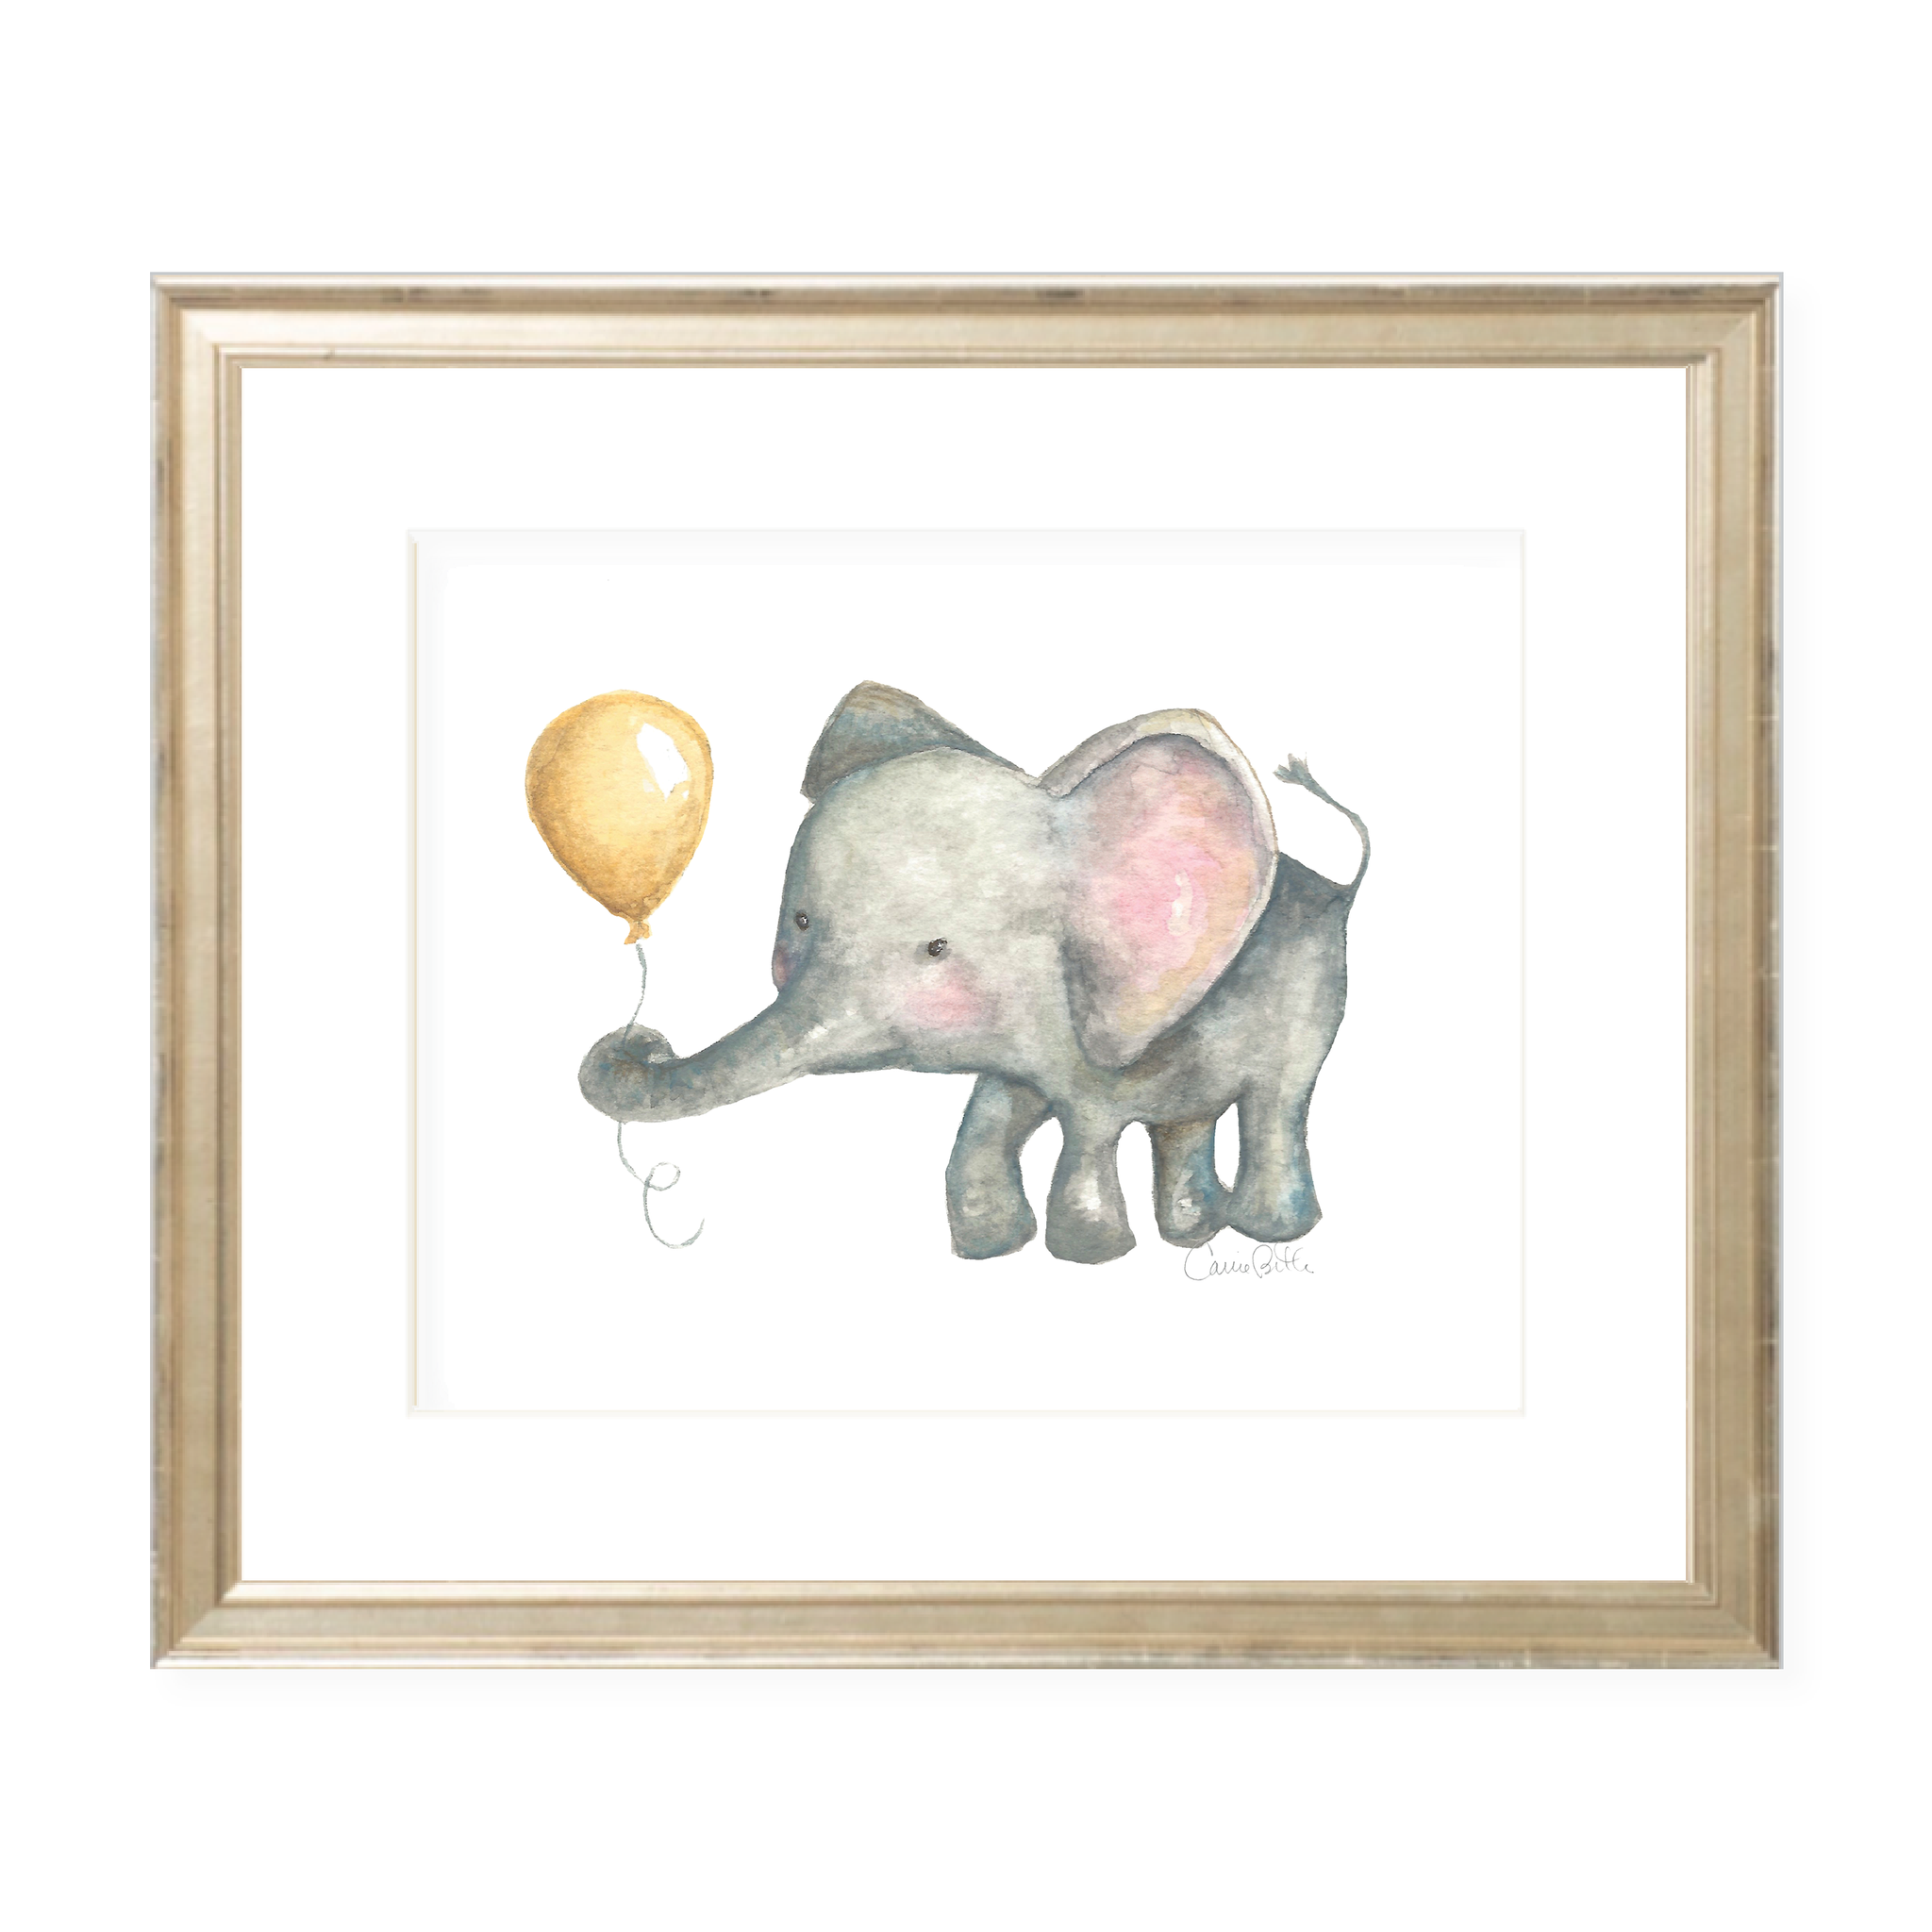 Elie and Balloon Watercolor Print